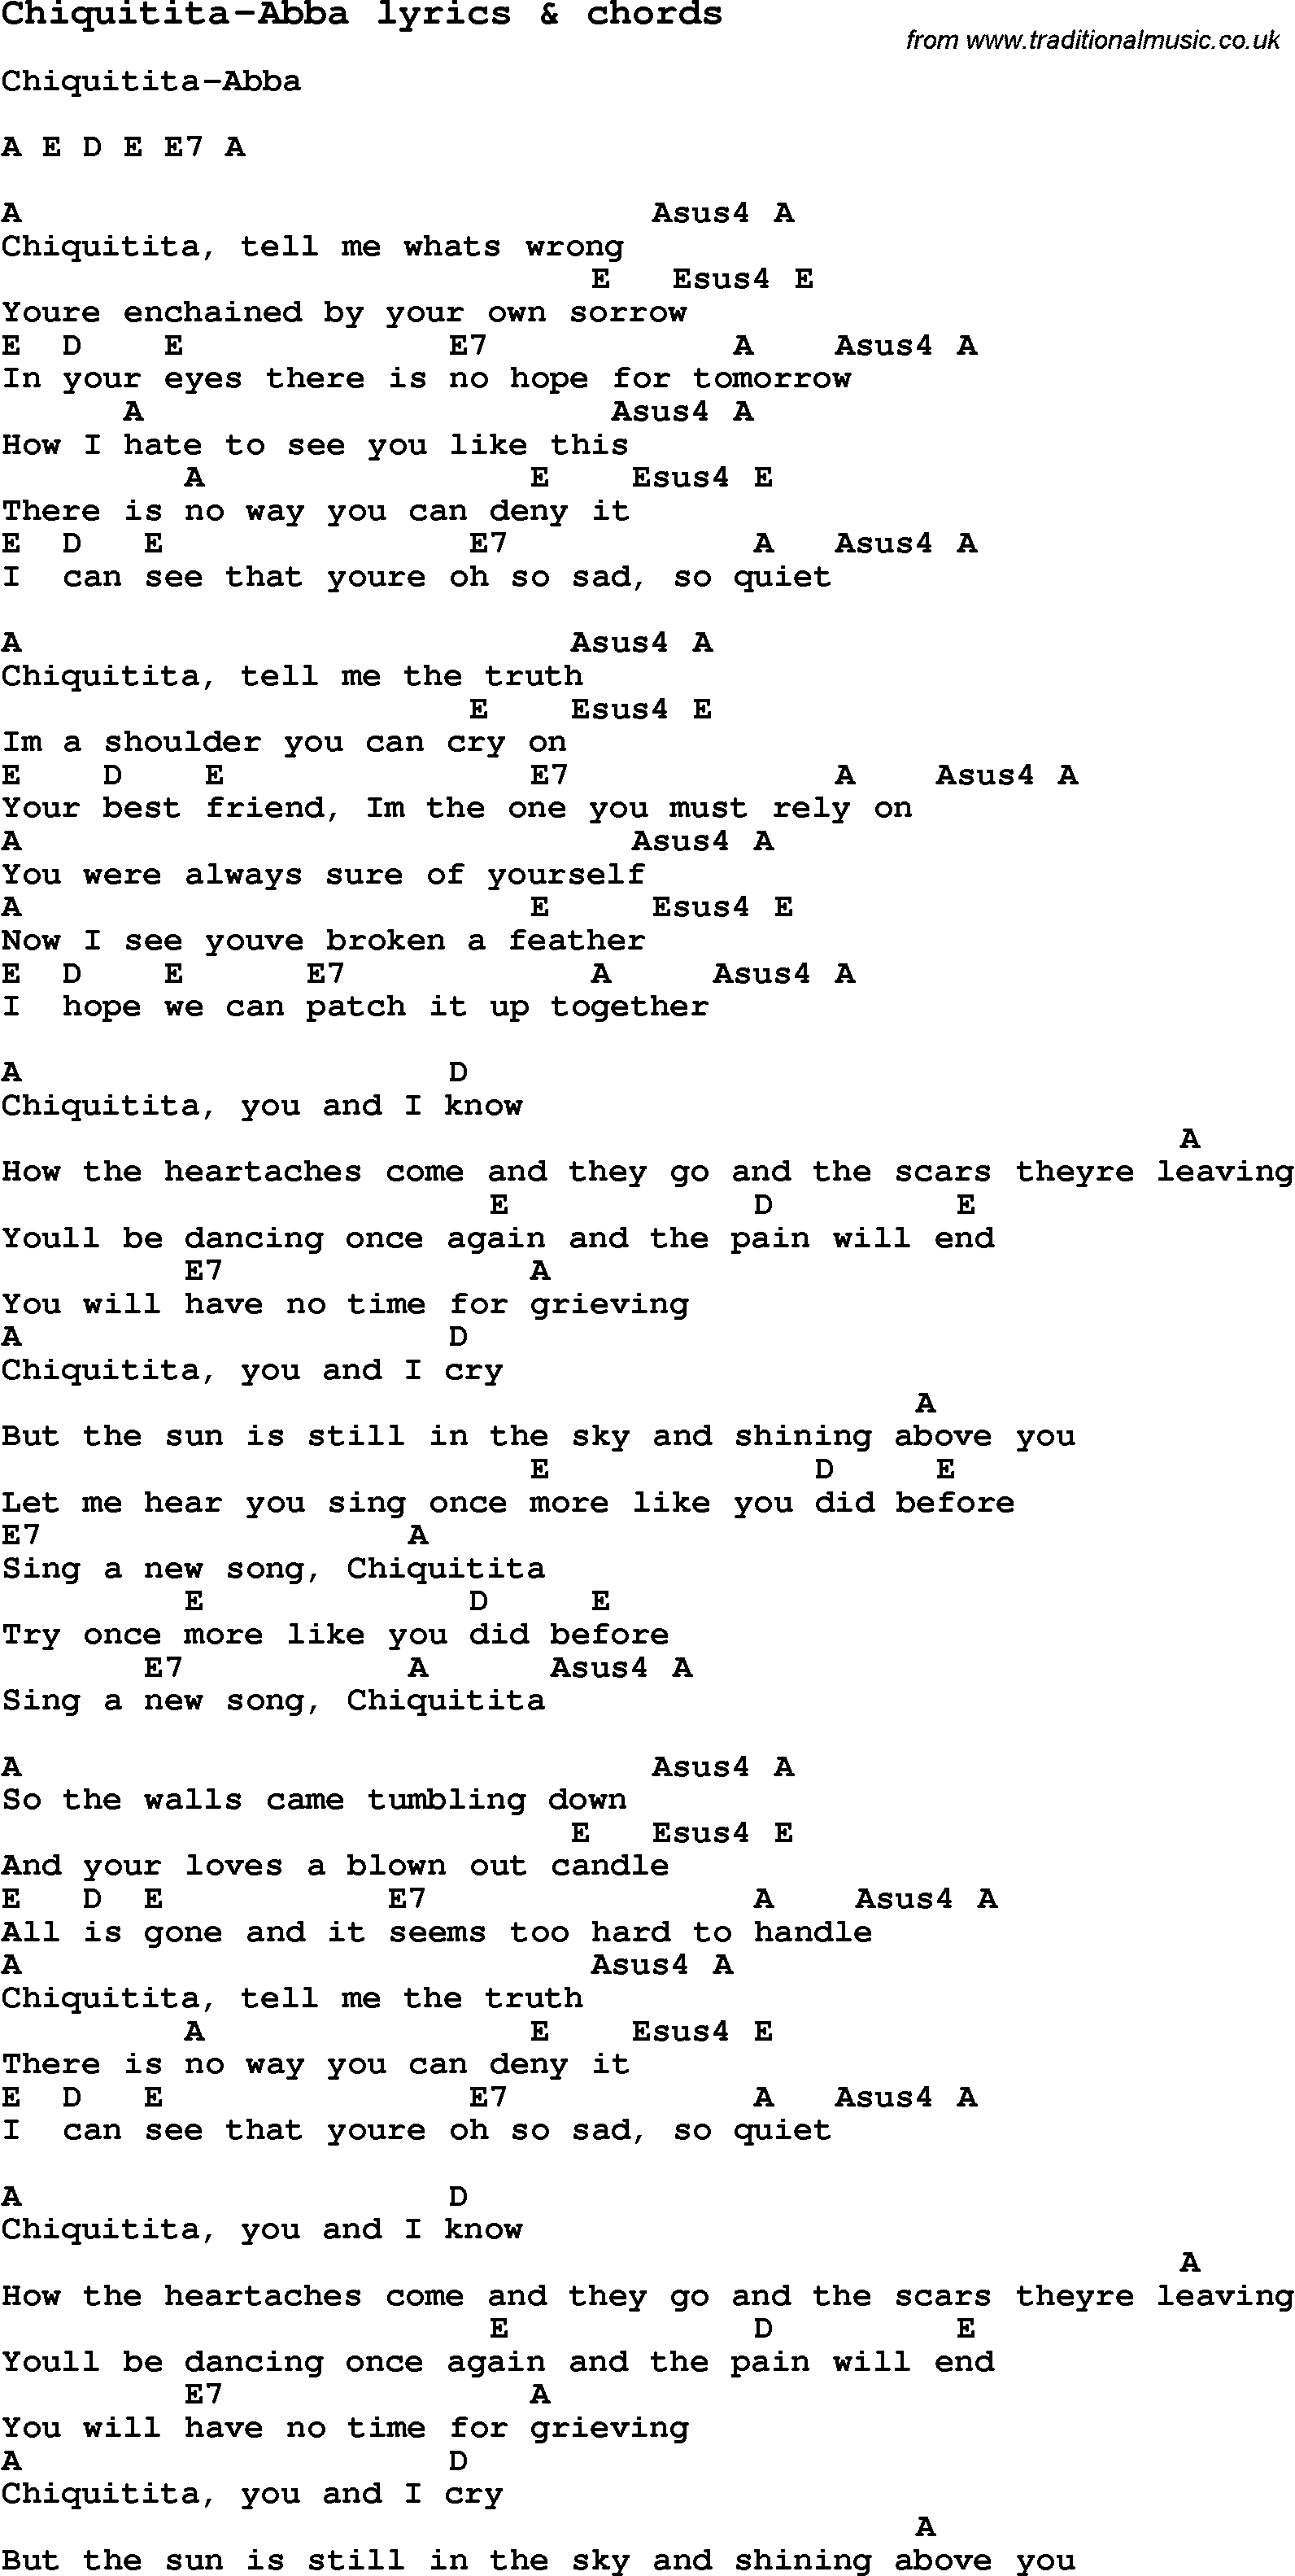 Love Song Lyrics for:Chiquitita-Abba with chords